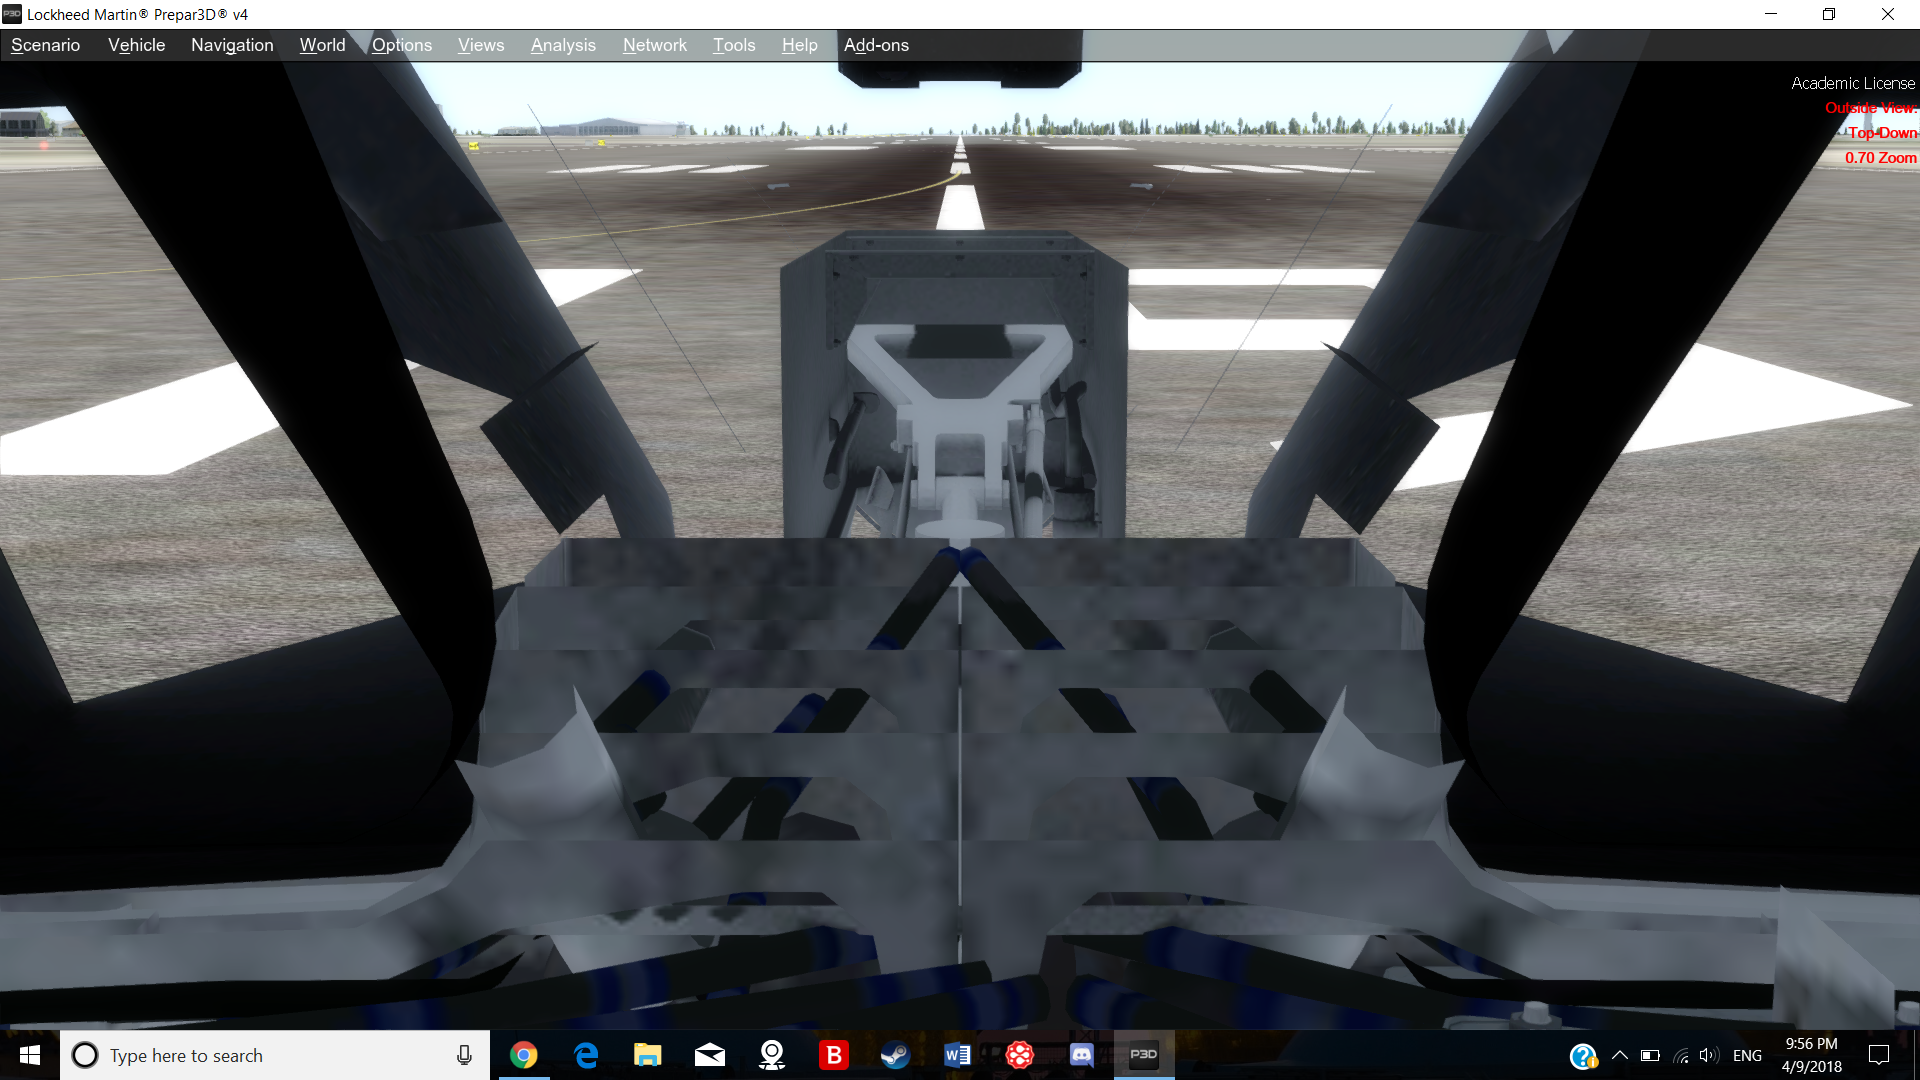 P3d v4 top-down view problem - General information (no support